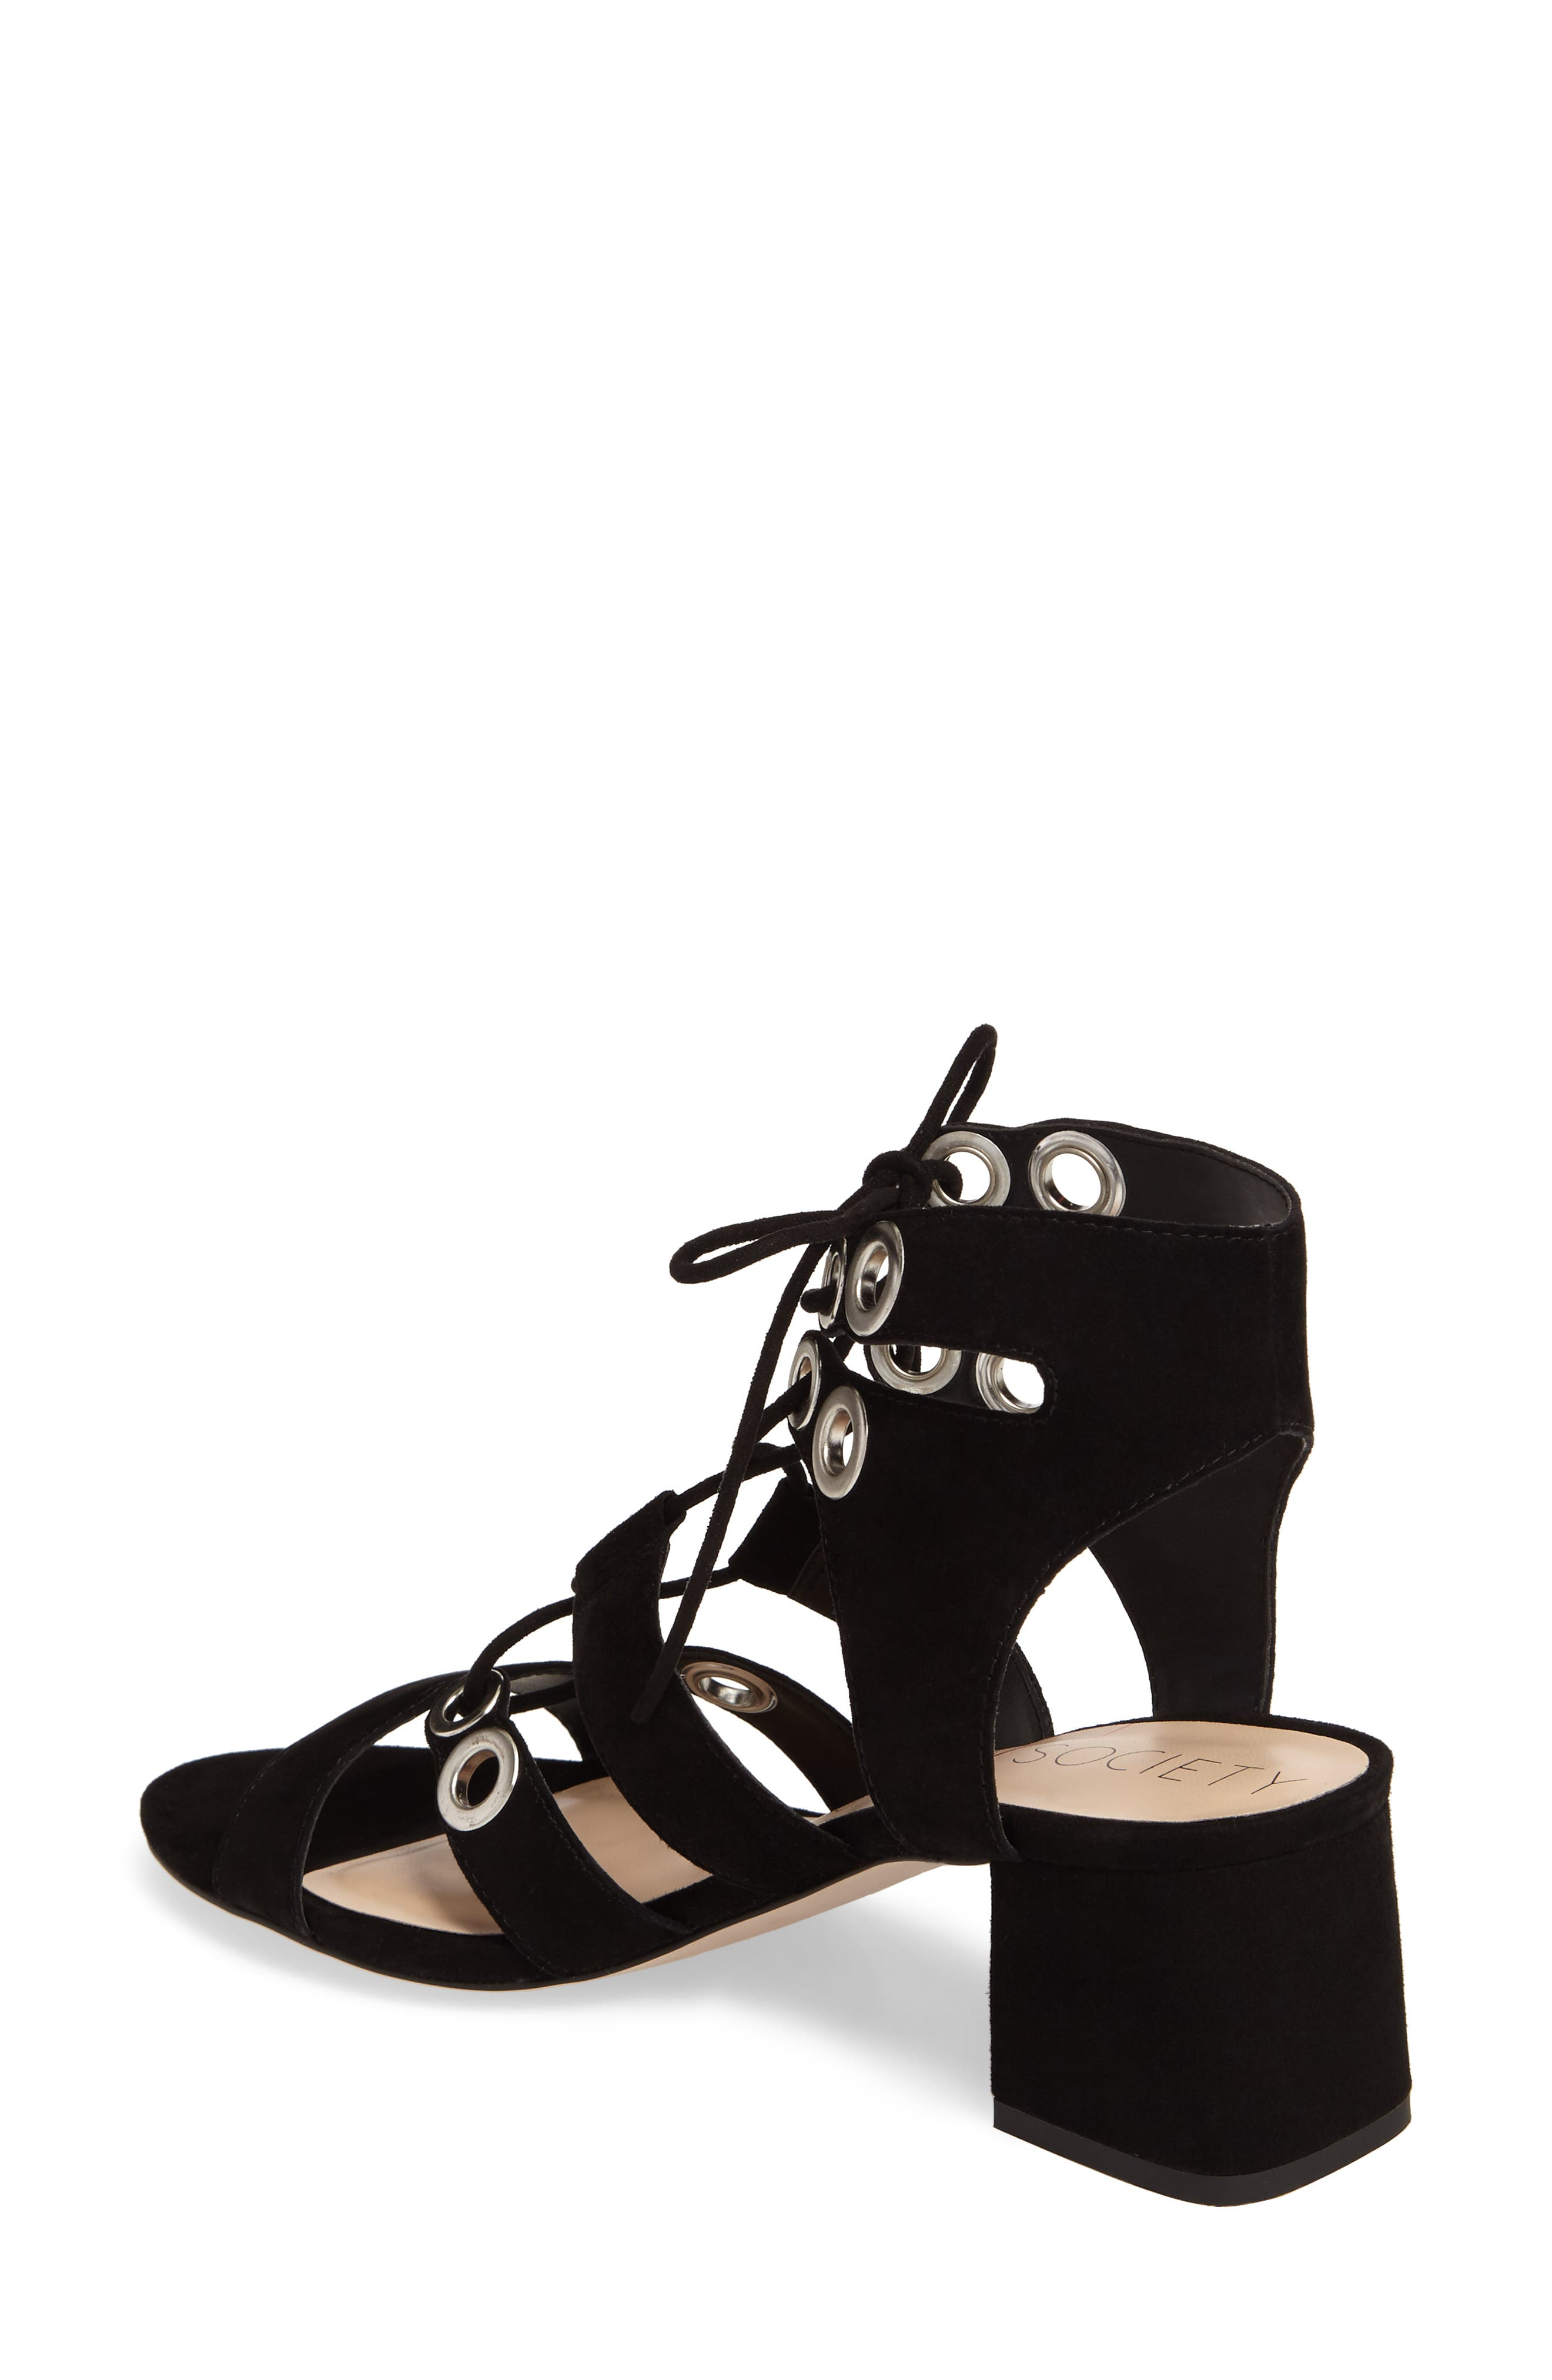 Rosemary Lace-Up Sandal,                             Alternate thumbnail 2, color,                             003